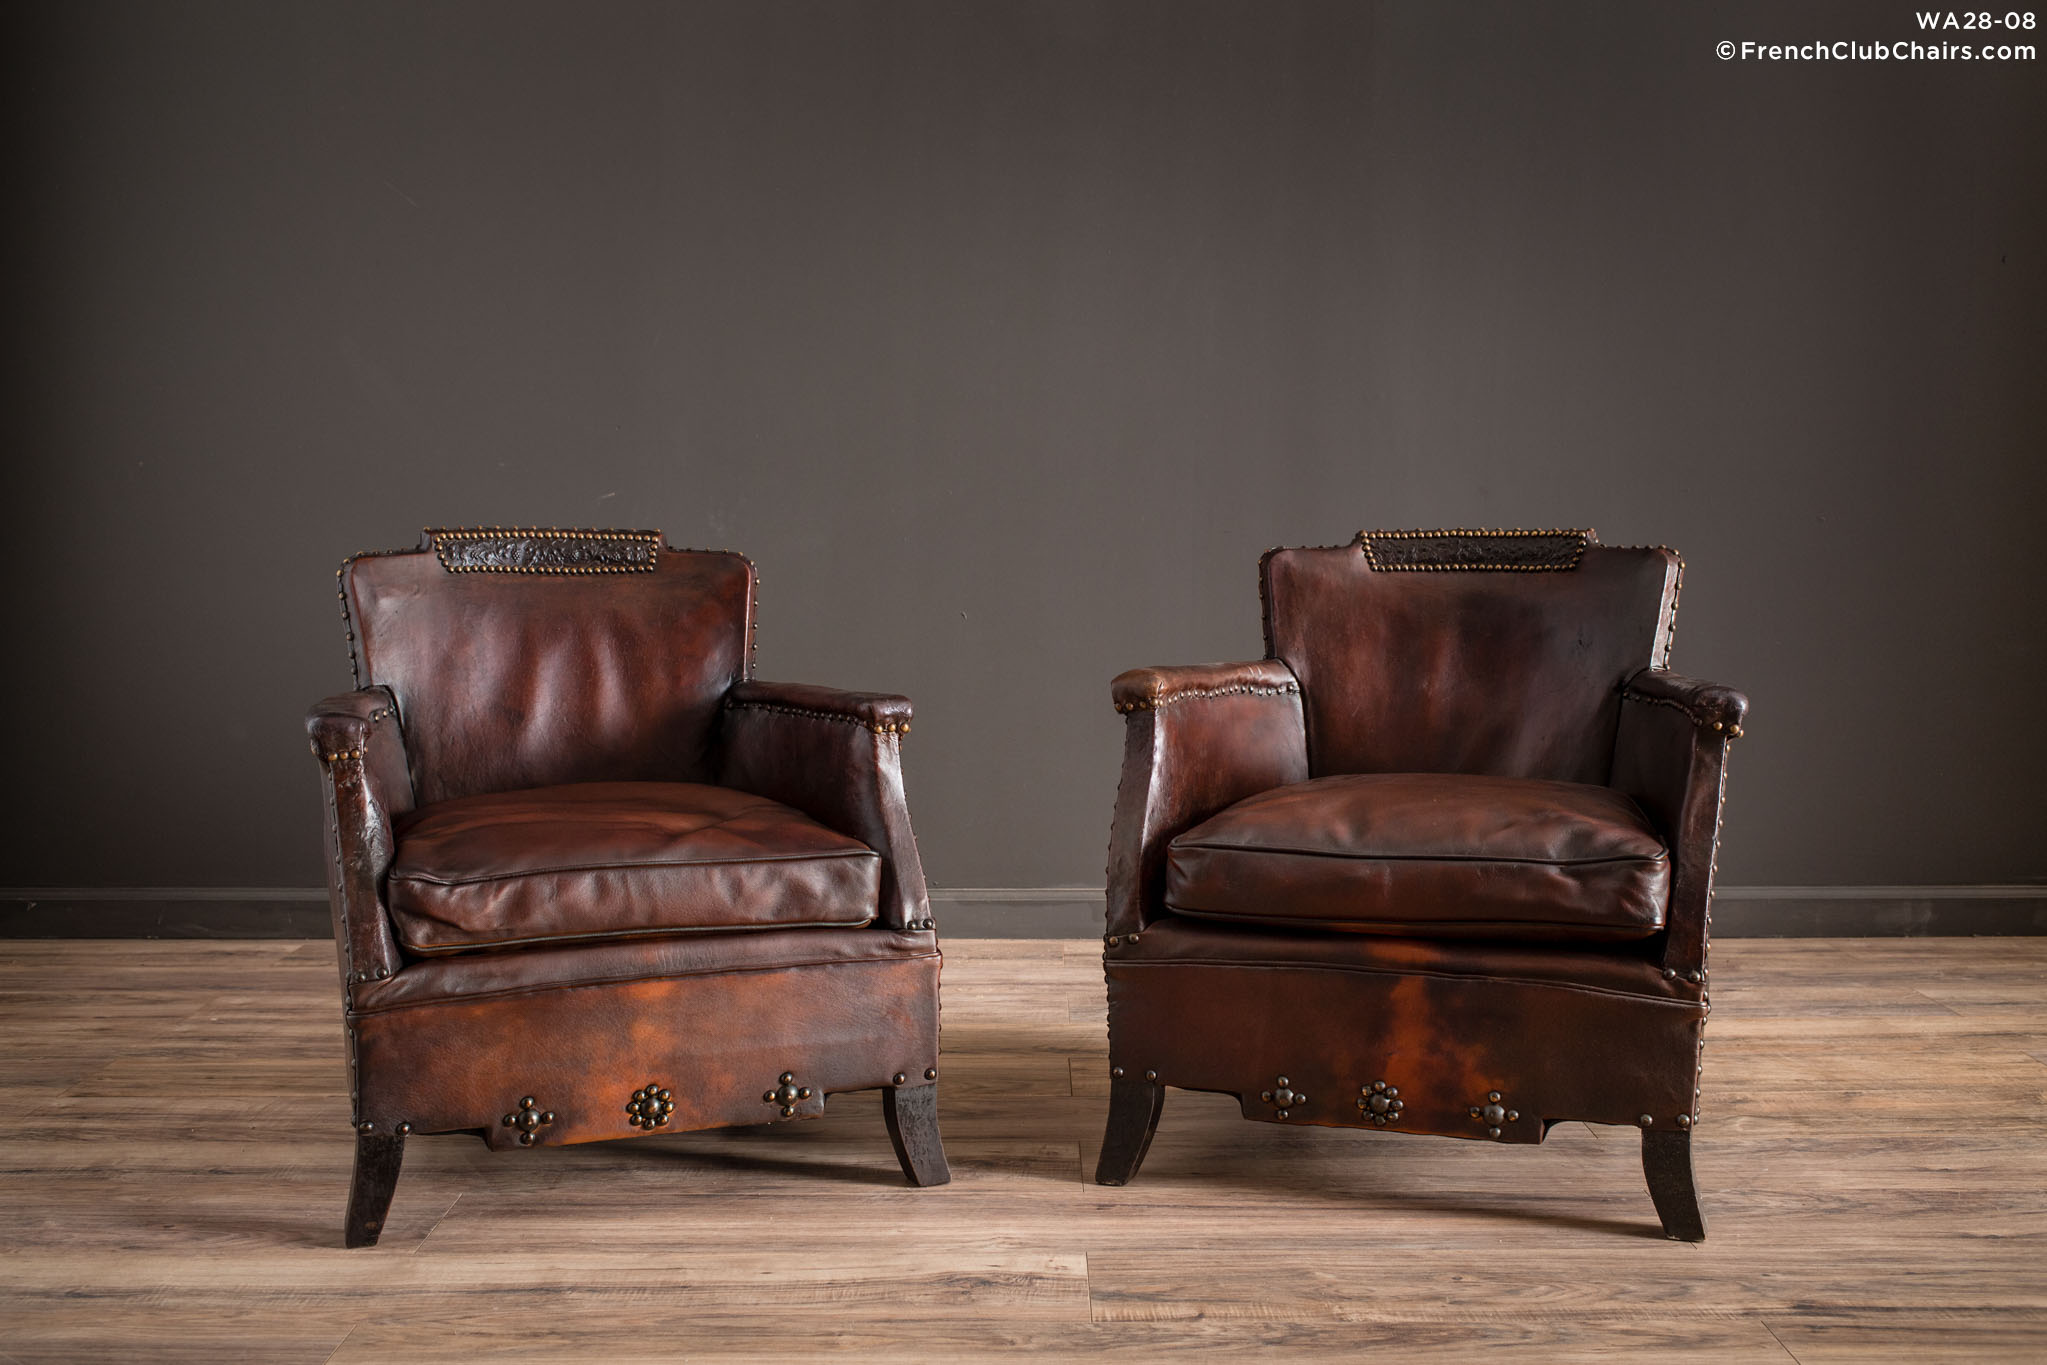 WA_28-08_Corbeilles_De_Vignoble_Pair_R_1TQ1-williams-antiks-leather-french-club-chair-wa_fcccom